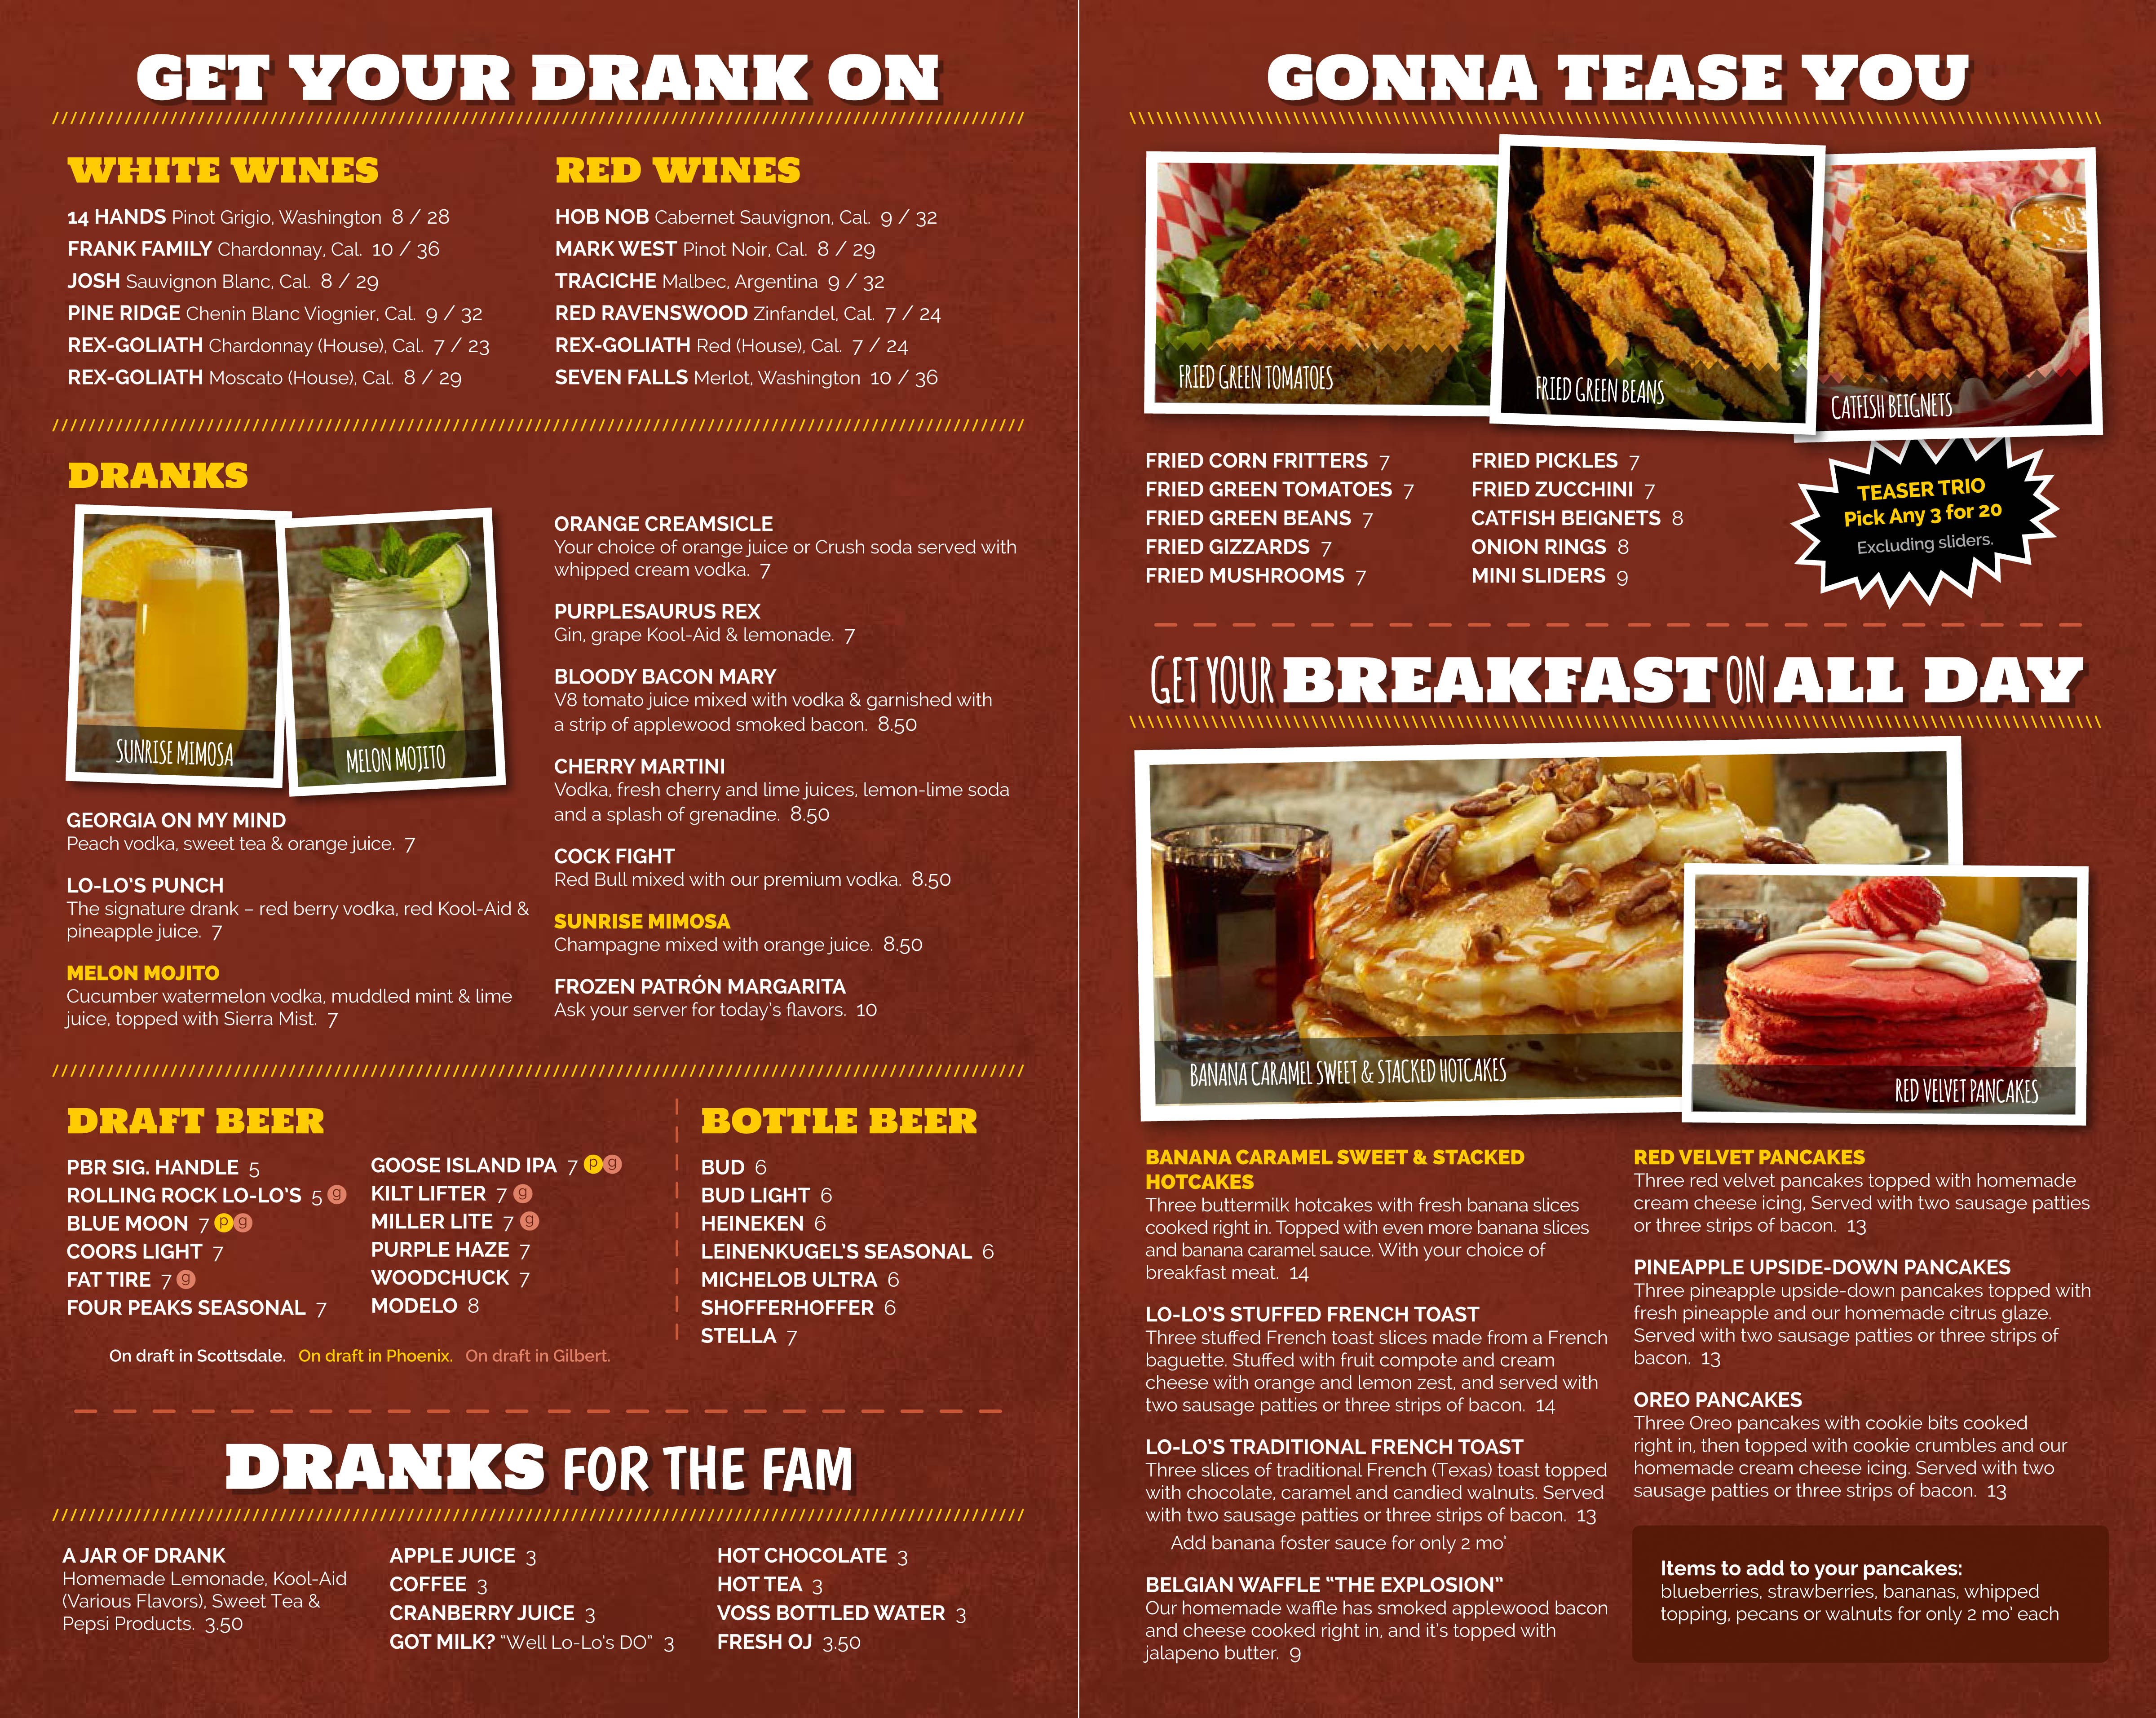 Roscoe'S Chicken And Waffles Menu  lo lo's chicken & waffles Patrick Darby graphy